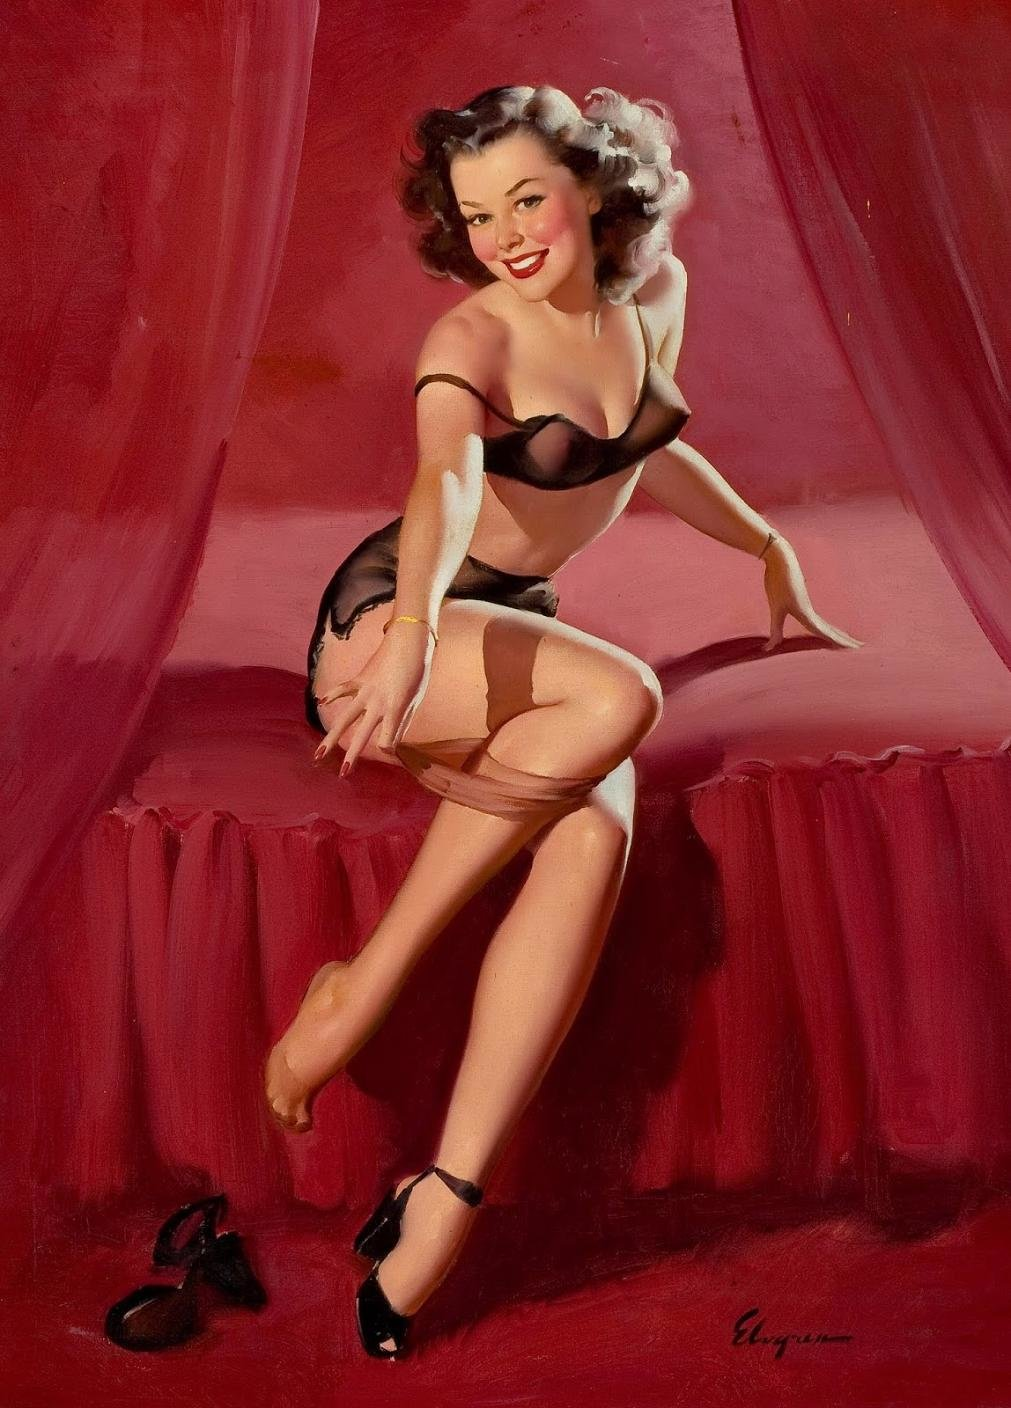 Vintage pin up girl pictures bond sex